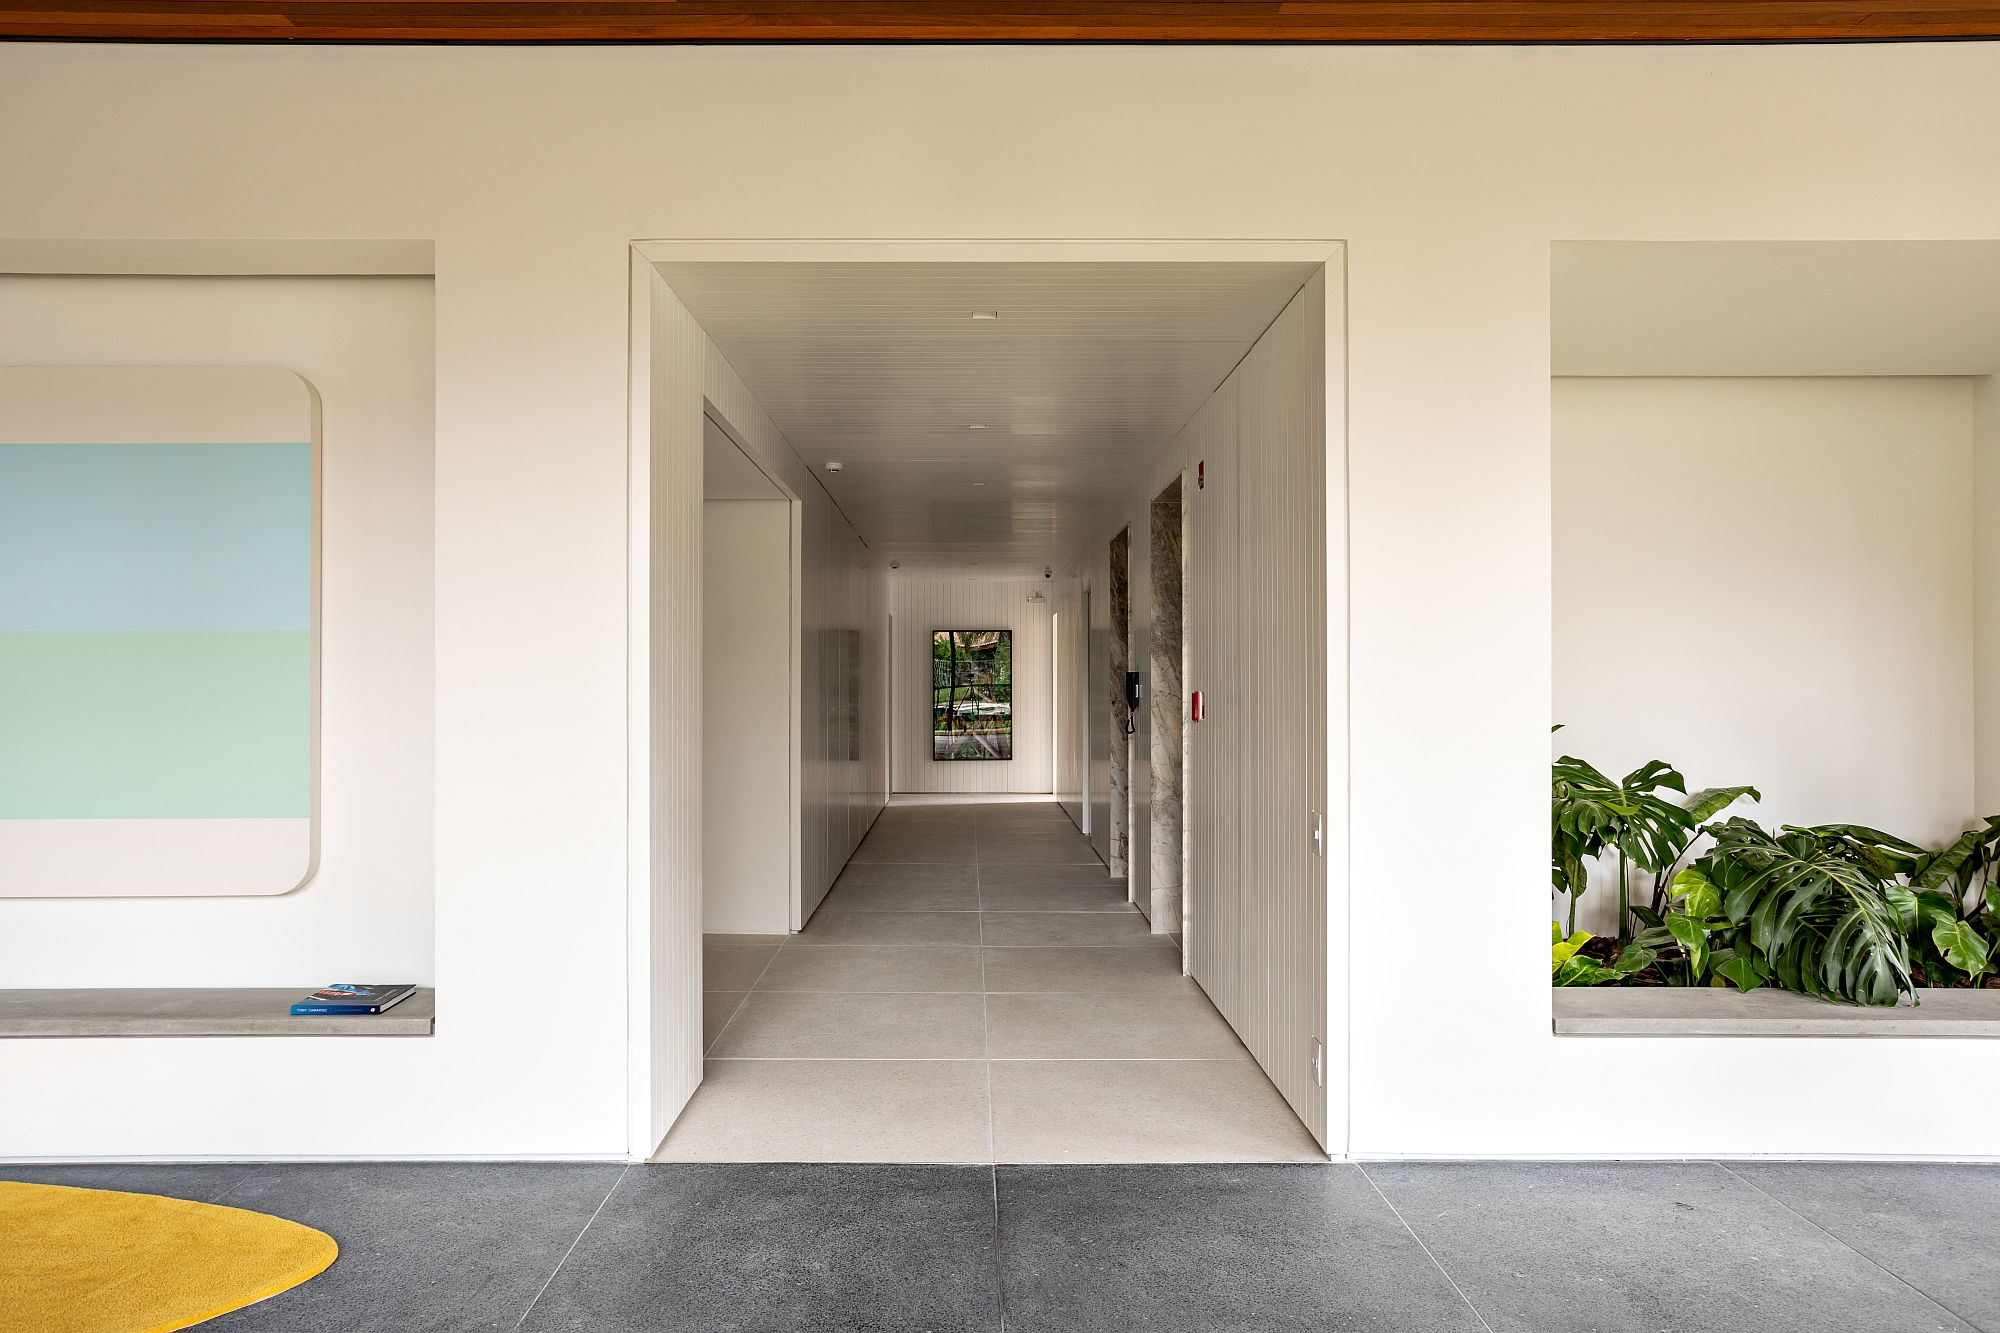 White corridor of the entry that leads to events spaces and the playareas